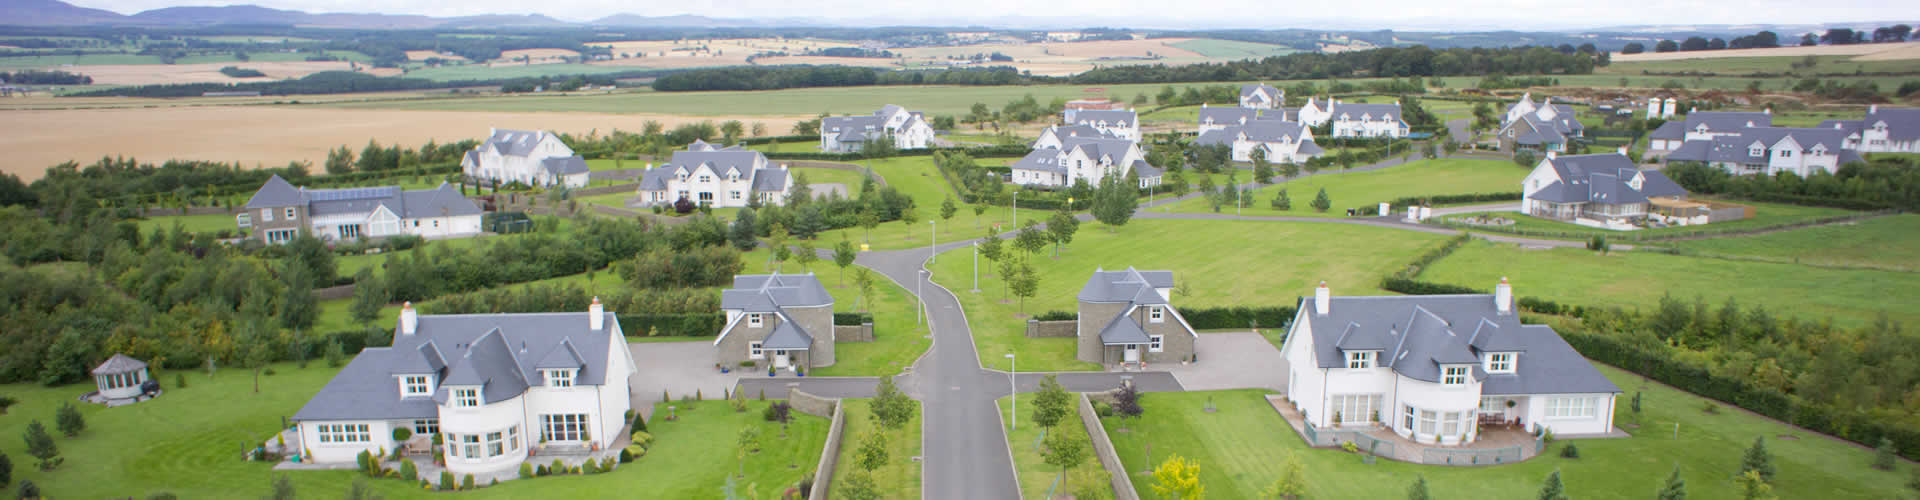 Clathymore housing development Perthshire